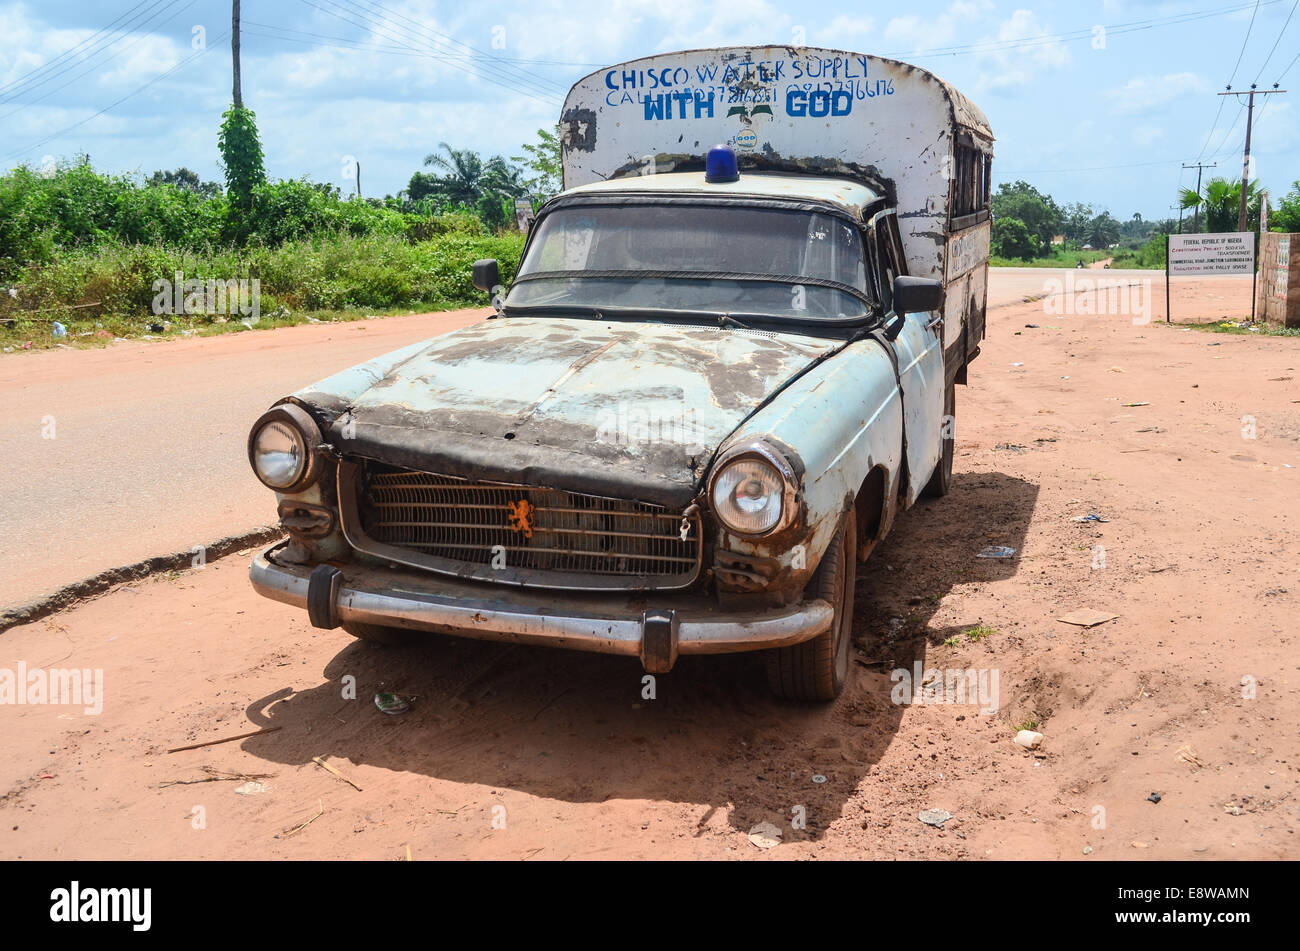 Rural Nigeria An Old Peugeot 504 Running With God Near Sabon Gida